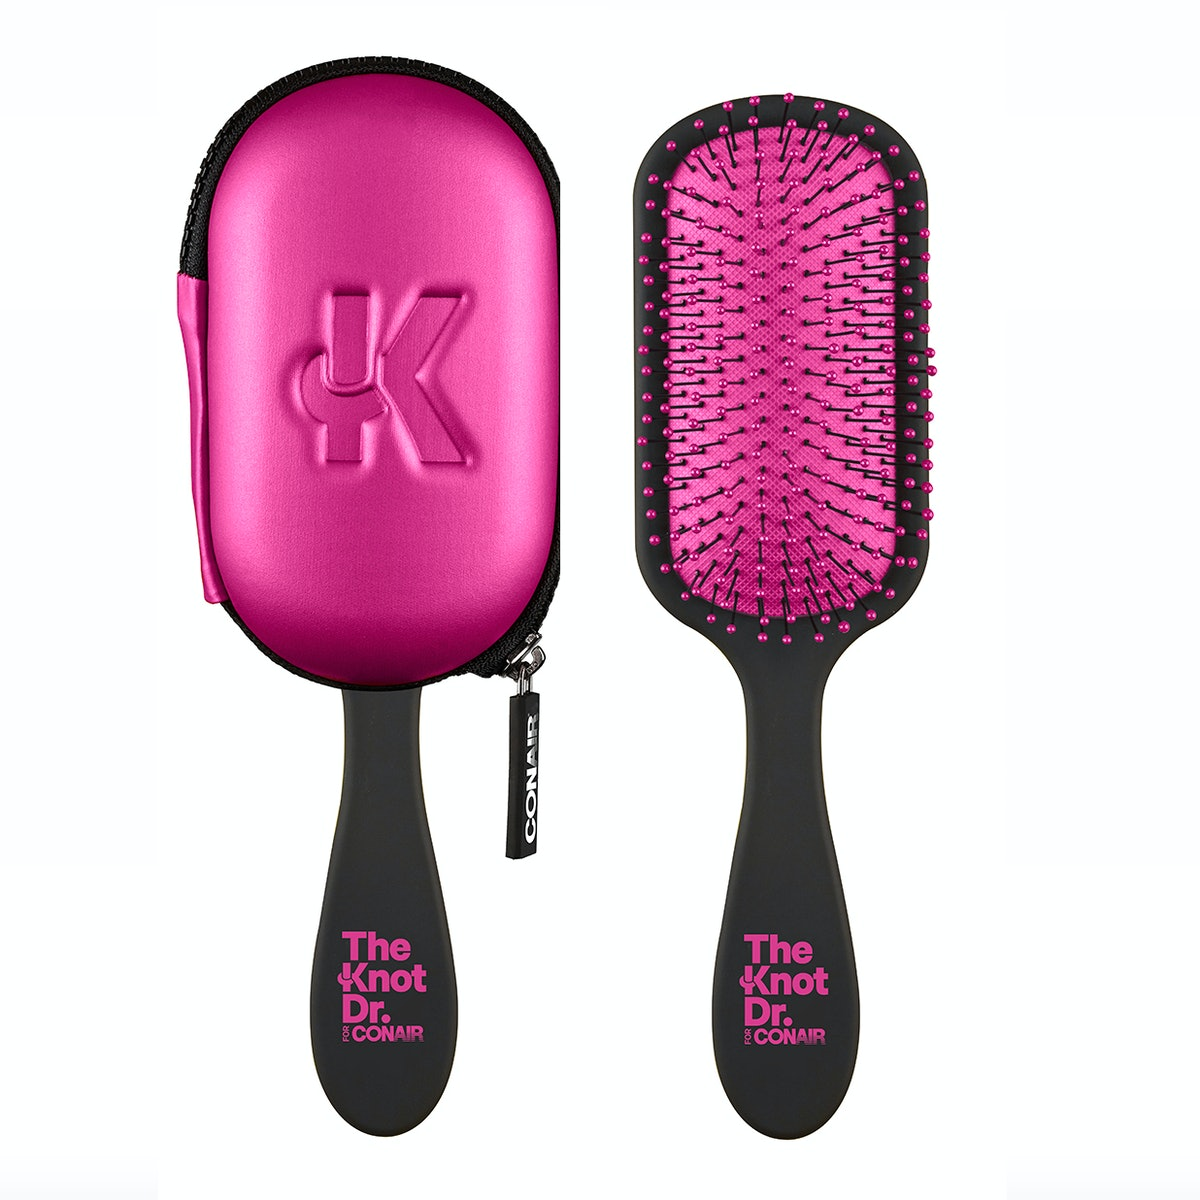 The Knot Dr. For Conair The Pro Detangling Hair Brush with Case